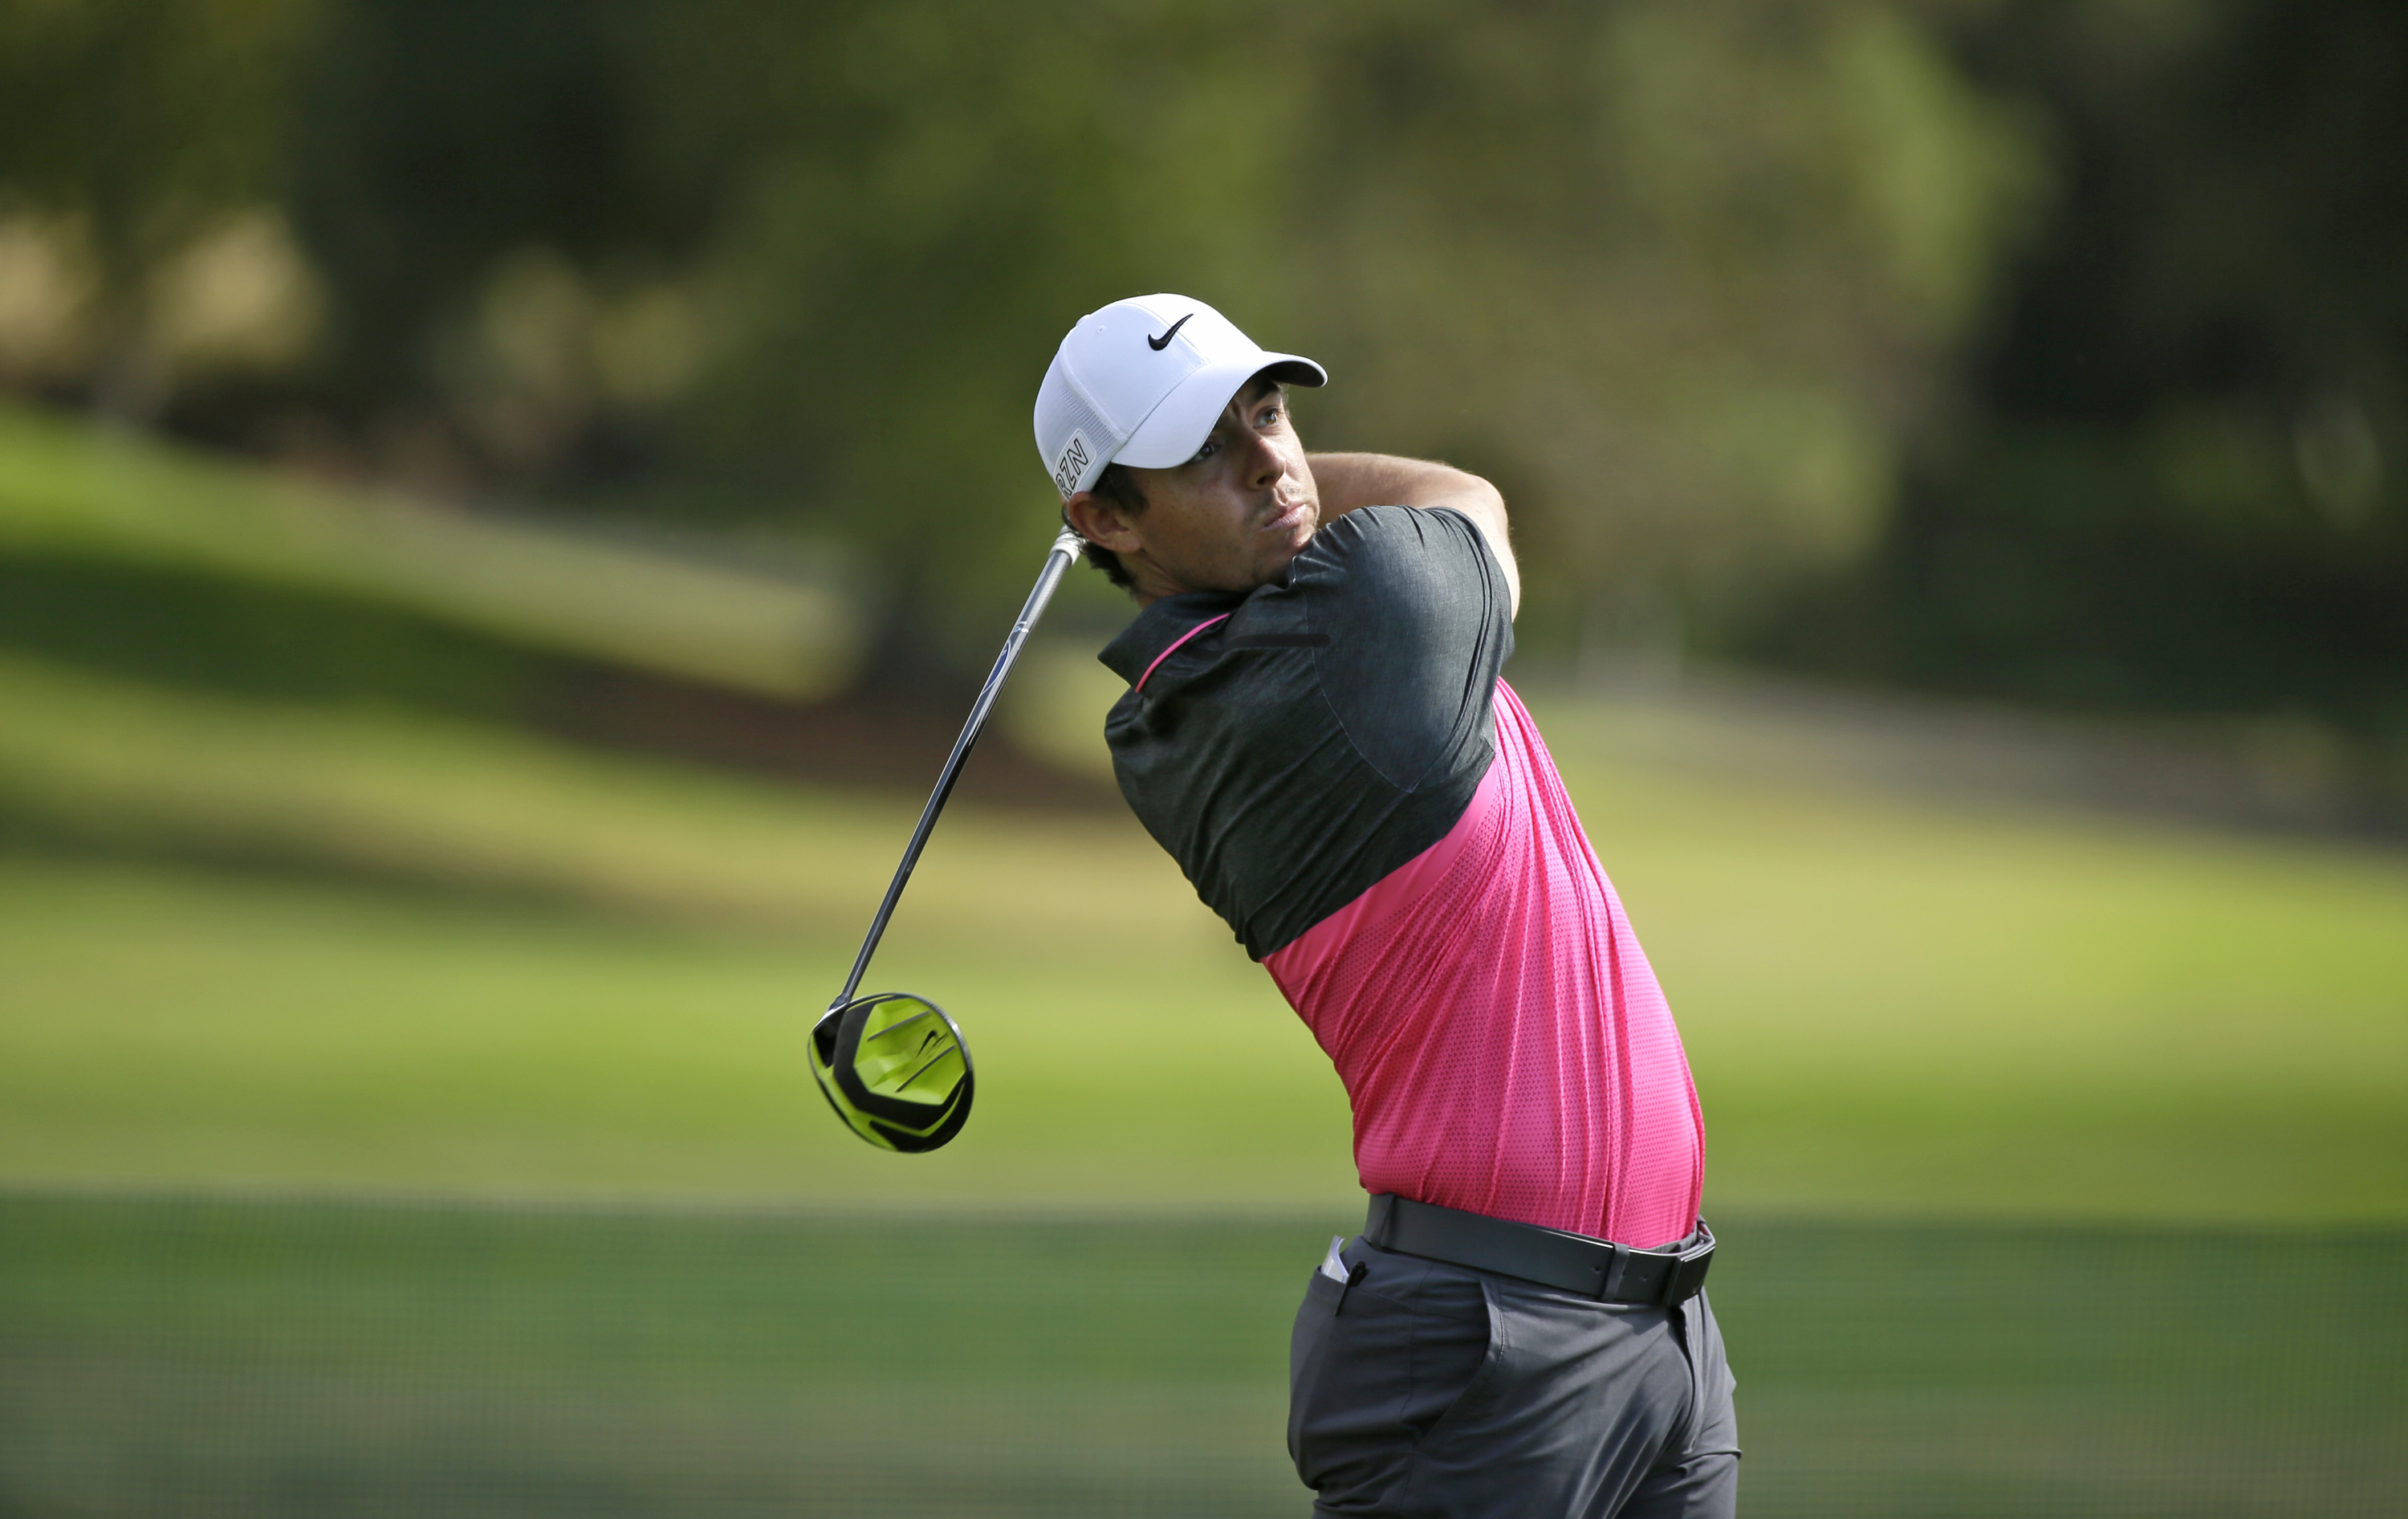 Rory McIlroy, of Northern Ireland, on the Silverado Resort North Course during the final round of the Frys.com PGA Tour golf tournament Sunday, Oct. 18, 2015, in Napa, Calif. (AP Photo/Eric Risberg)